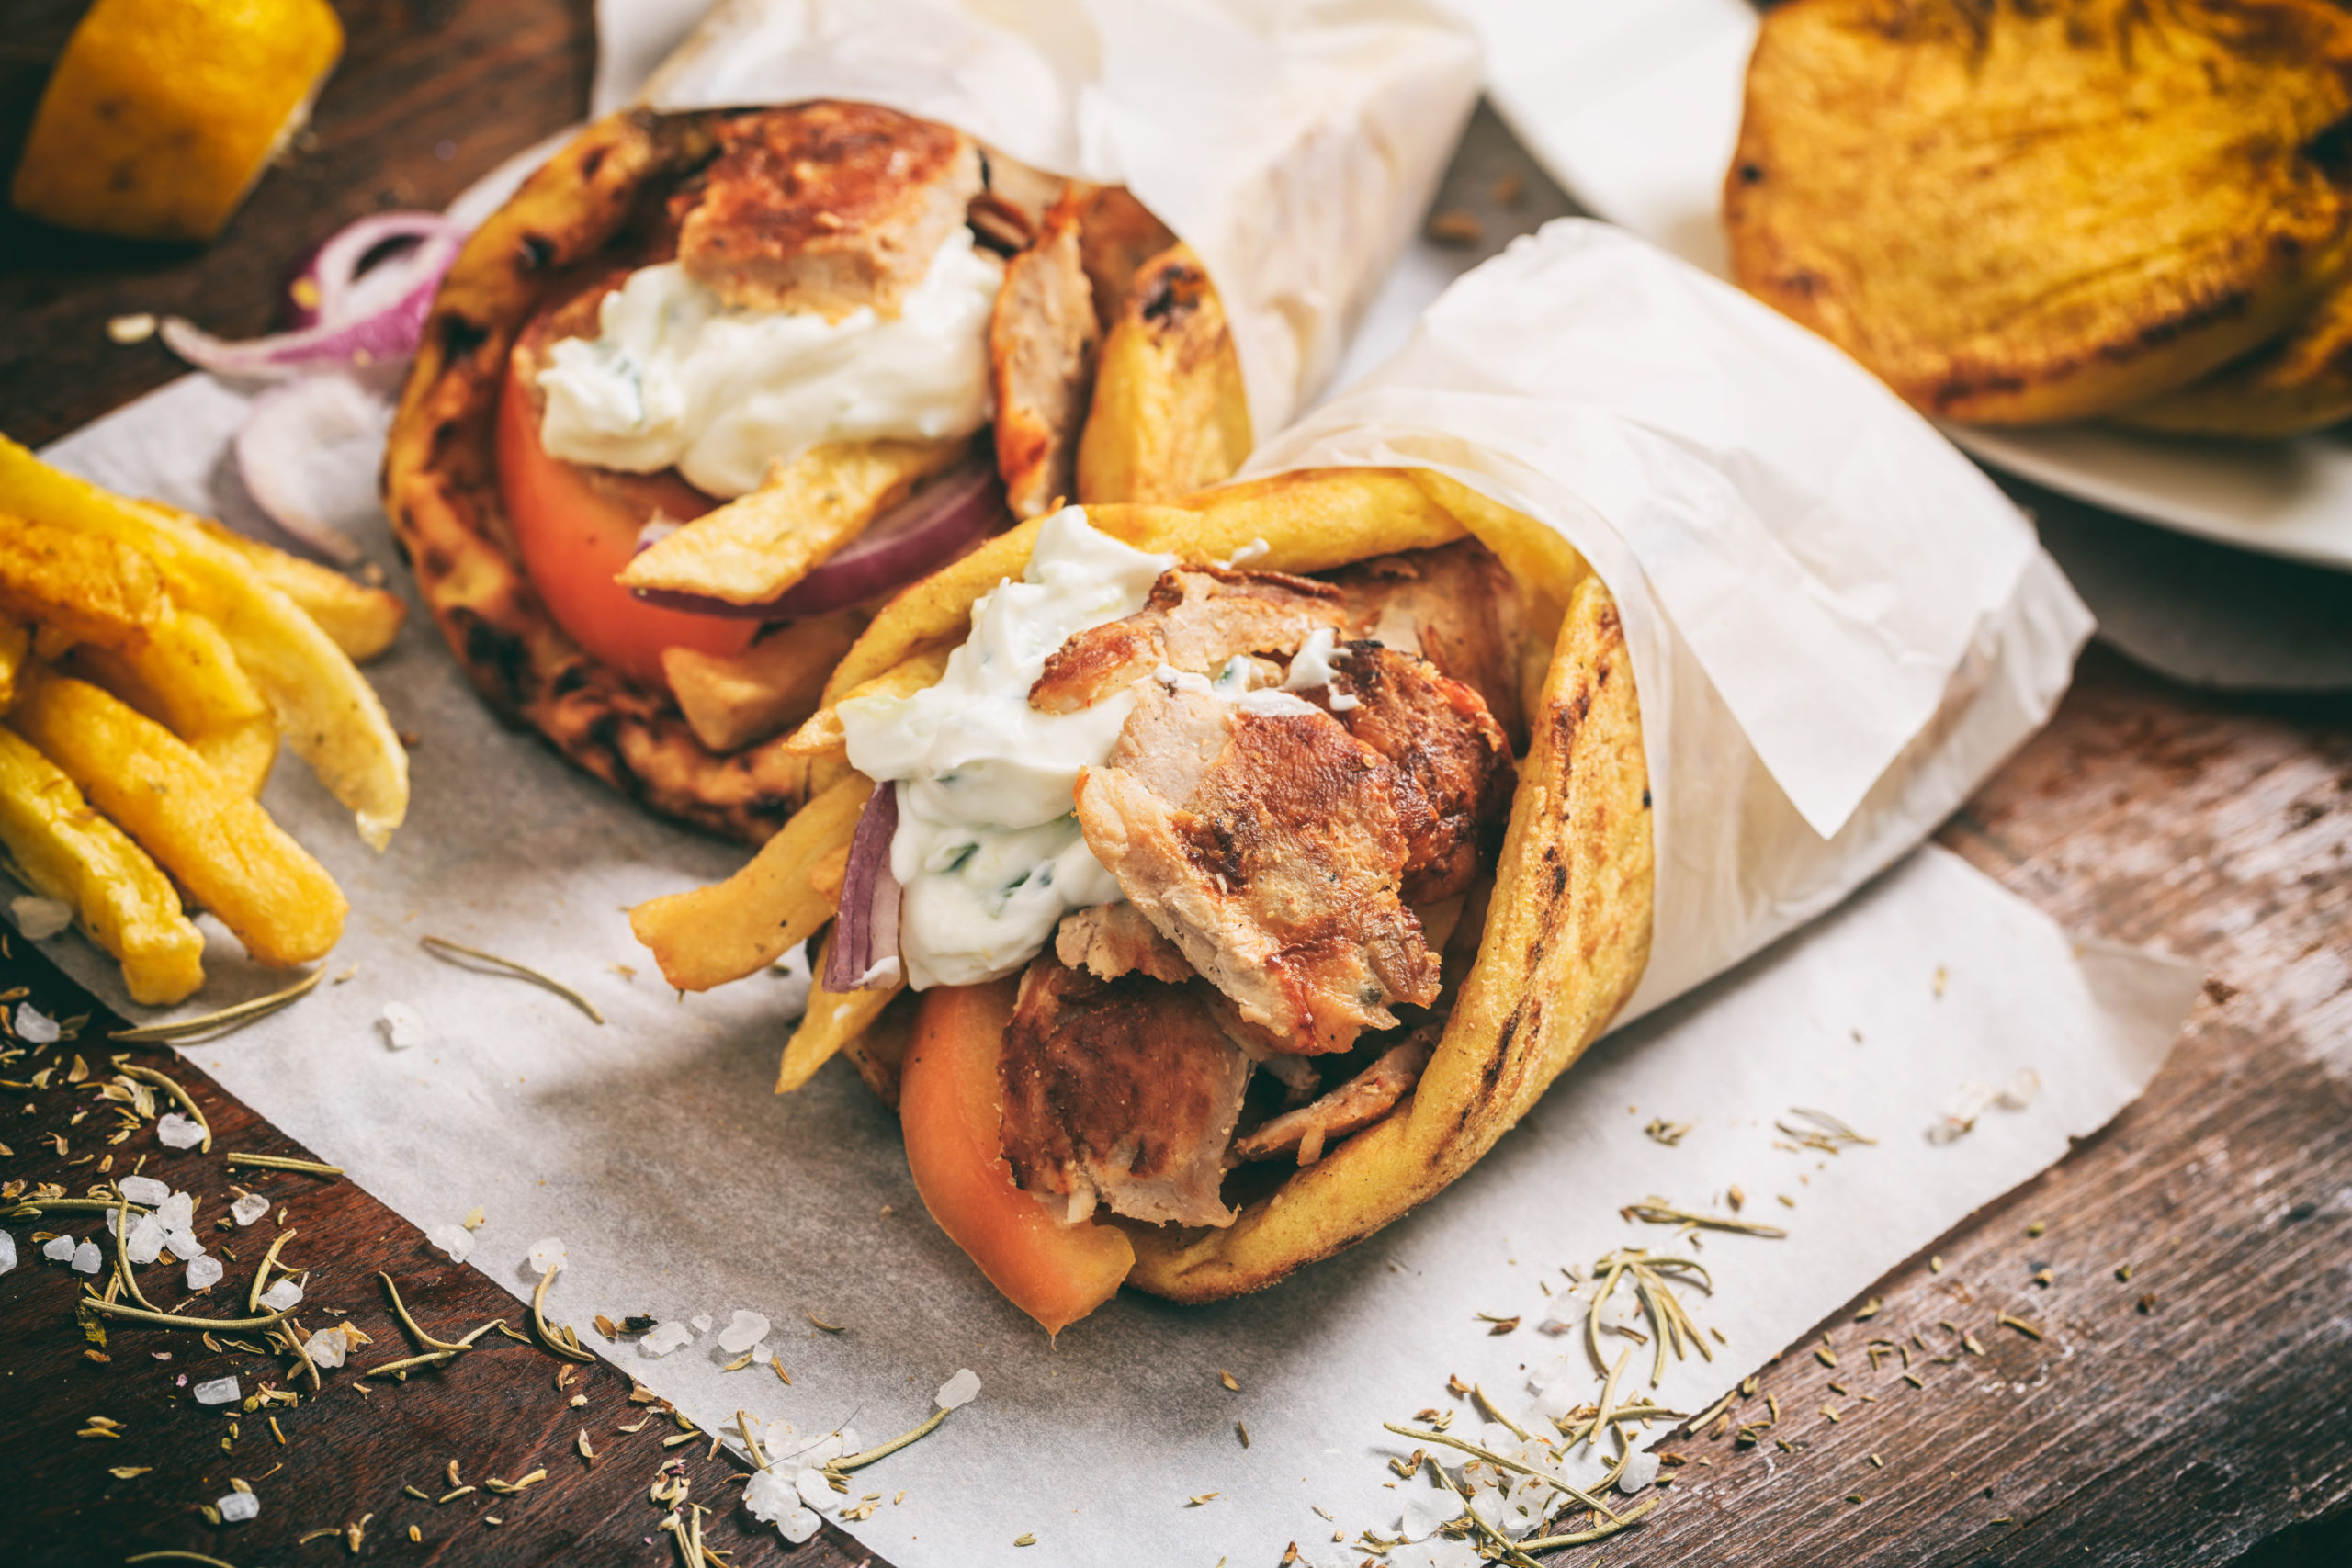 Takeout gyros on a plate.